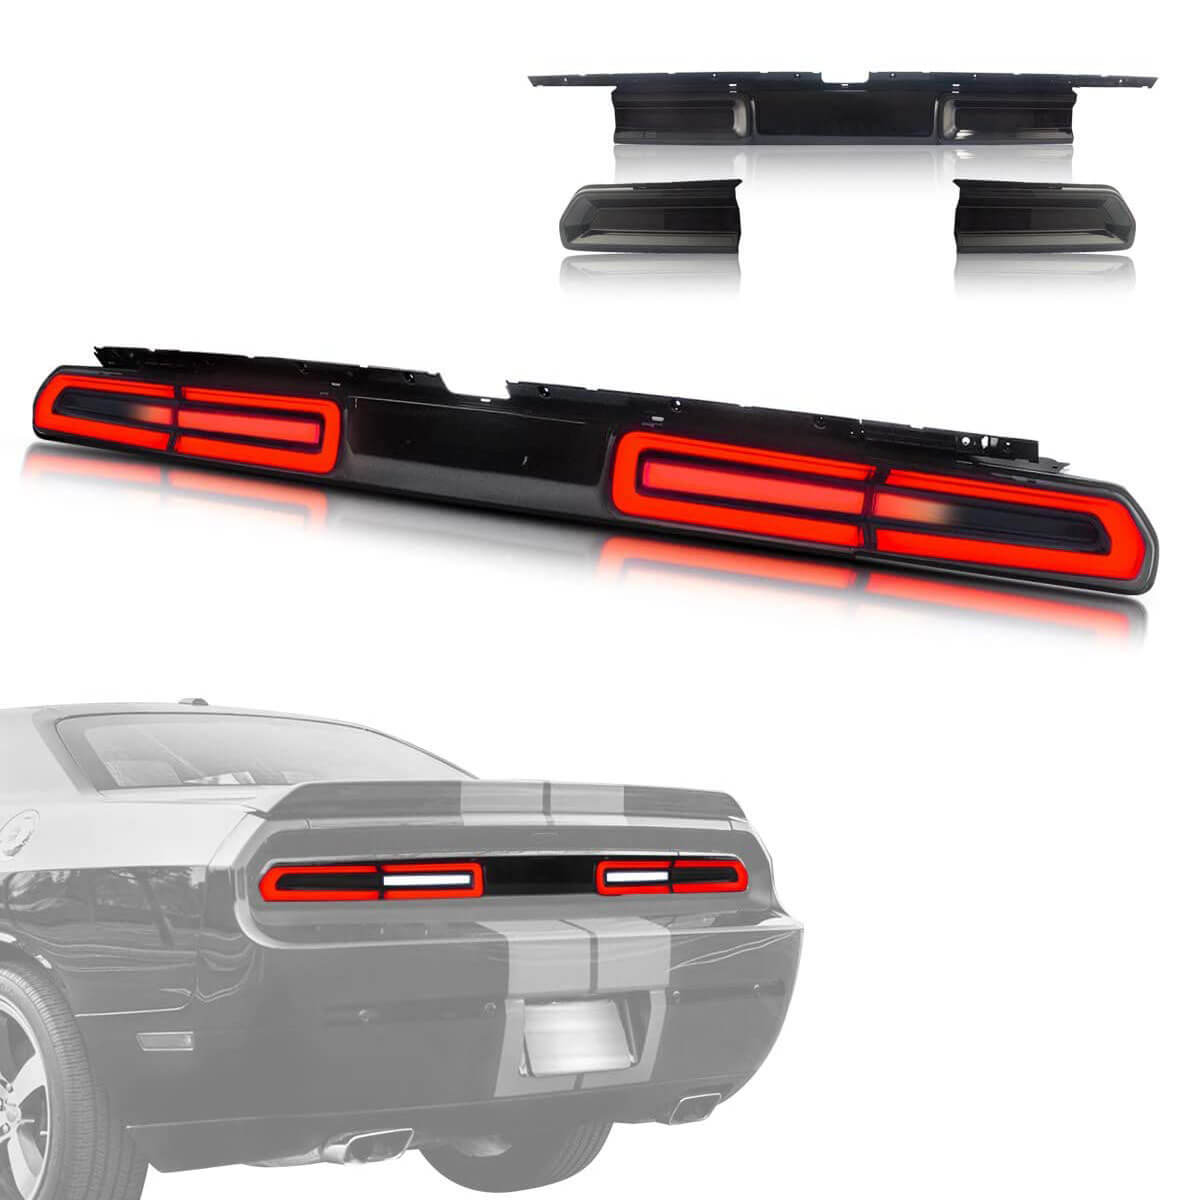 Vland Led Taillights For Dodge Challenger 2008 2014 W Sequential Indic Vland Official